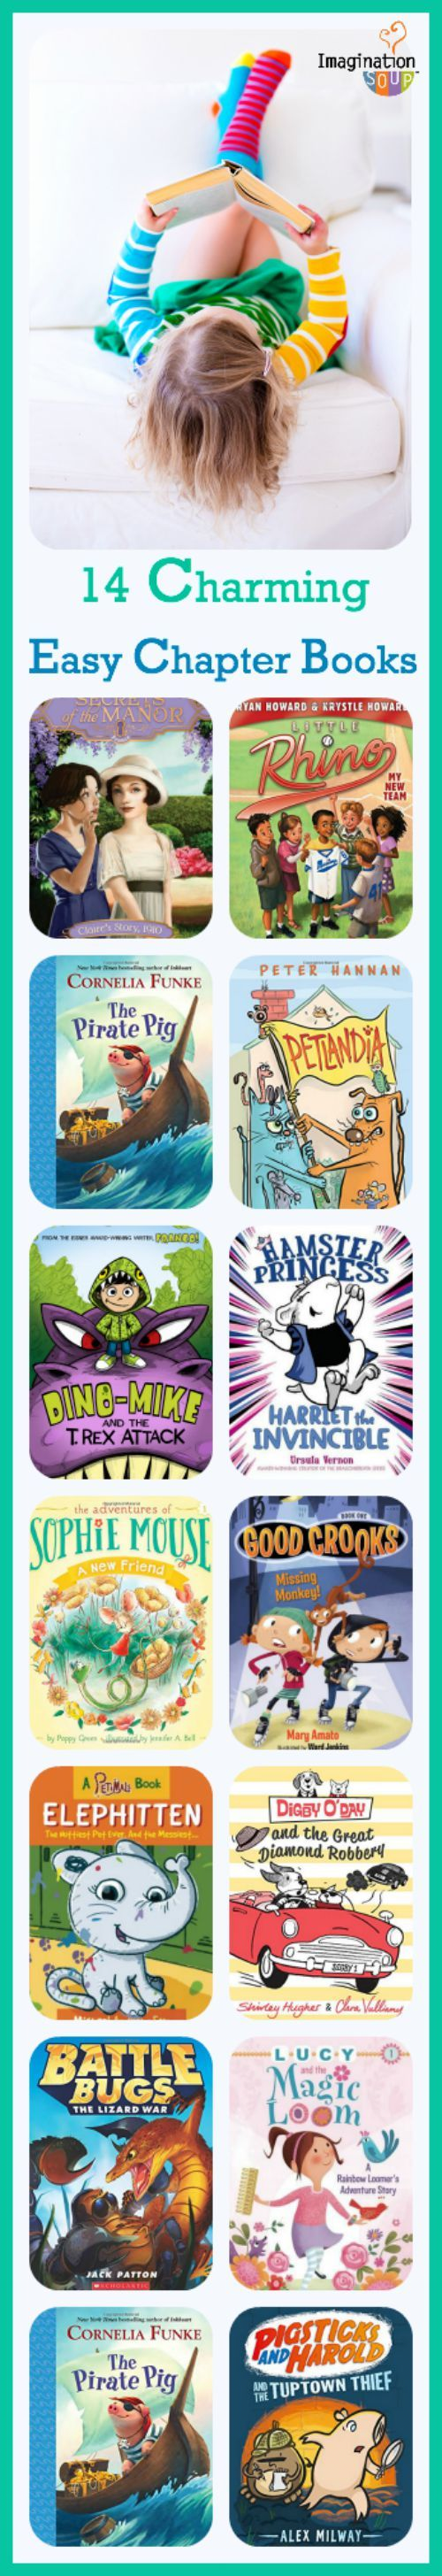 14 NEW charming easy chapter book reviews & recommendations - love these lists from Imagination Soup!